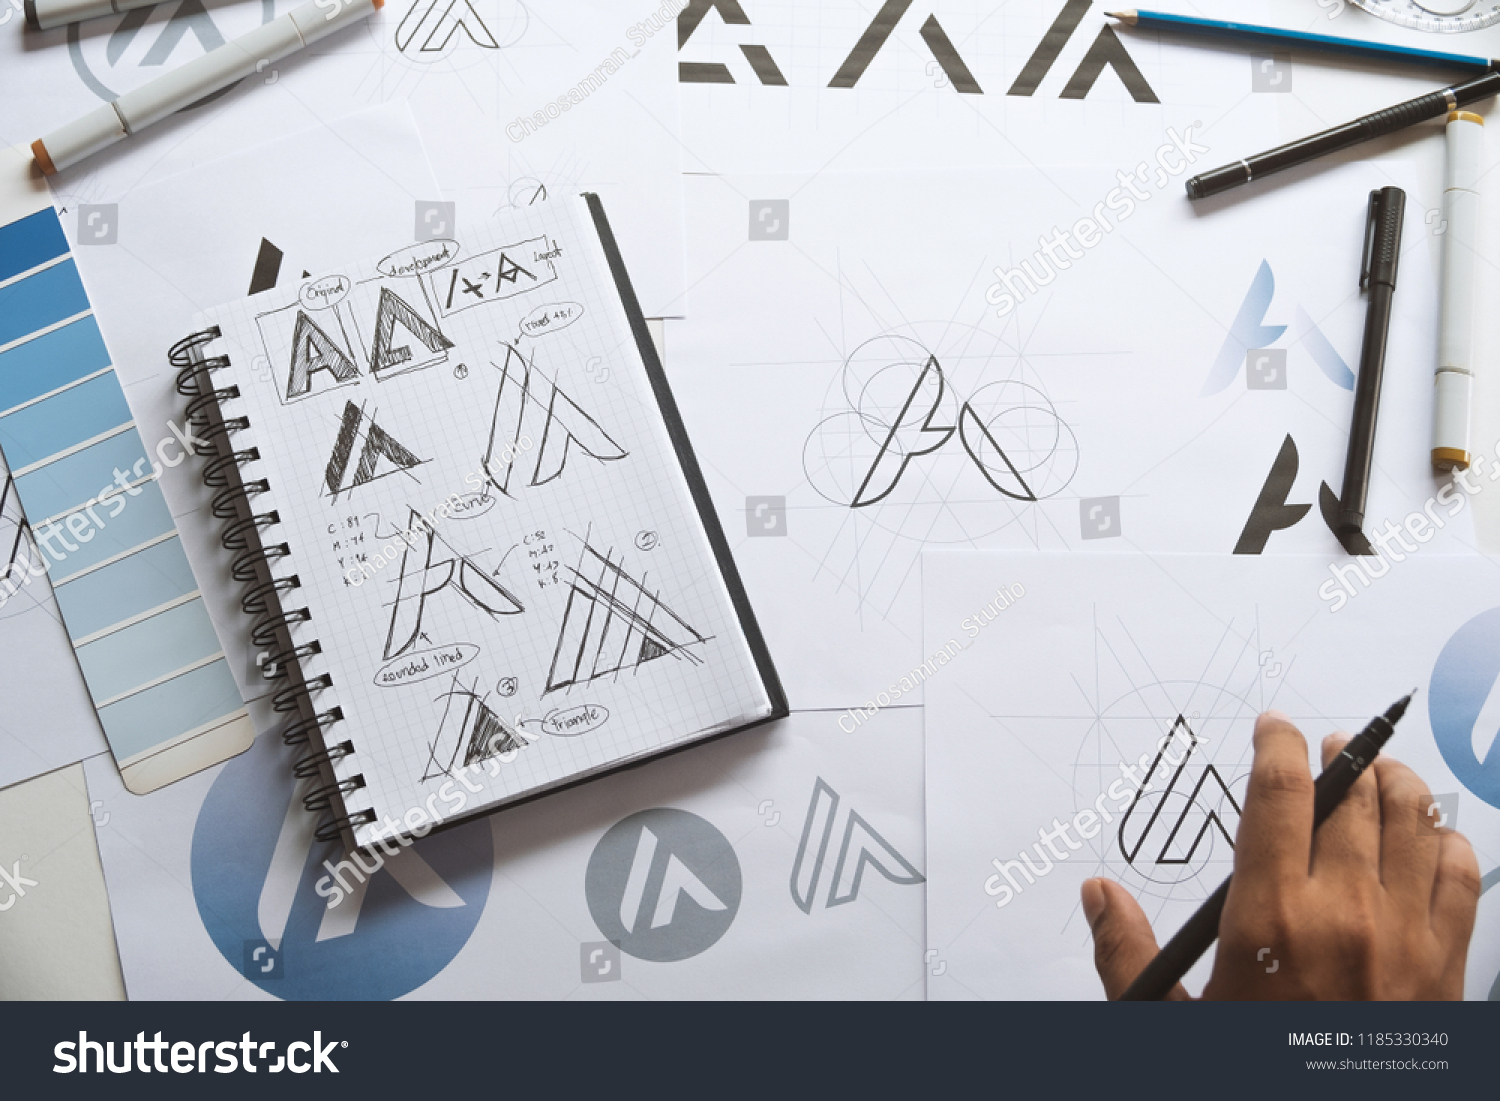 Graphic designer drawing sketch design creative Ideas draft Logo product trademark label brand artwork. Graphic designer studio Concept. #1185330340